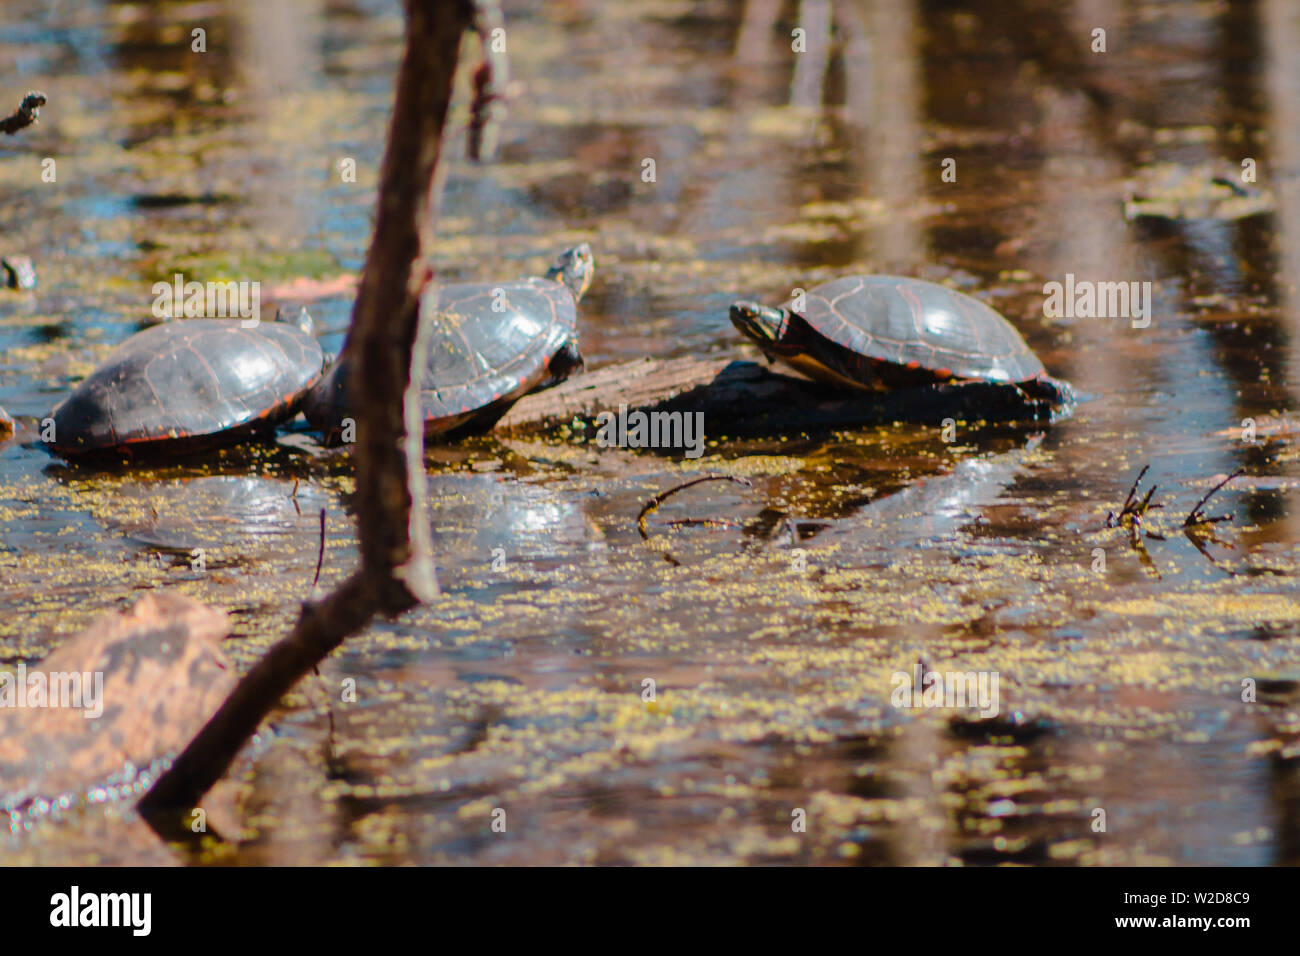 Close up of turtles sunning in a pond - Stock Image